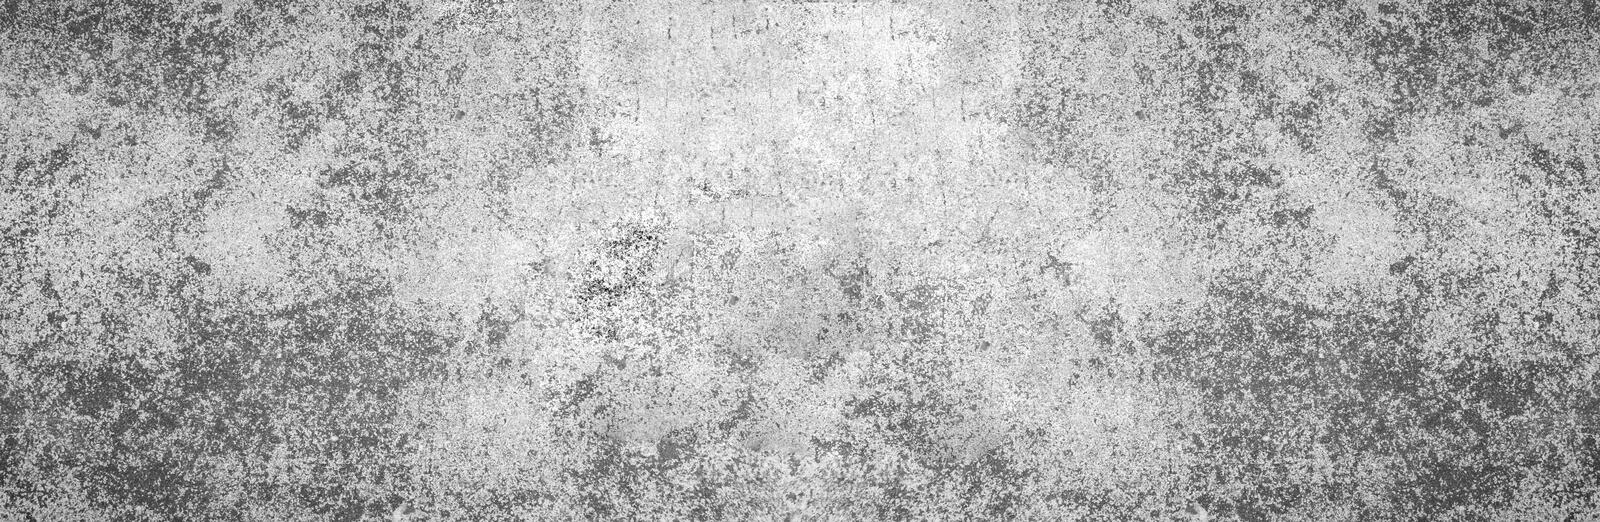 Modern grey paint limestone texture wide screen background in white light seam home wall paper. Back flat subway concrete stone. Table floor concept surreal stock photo